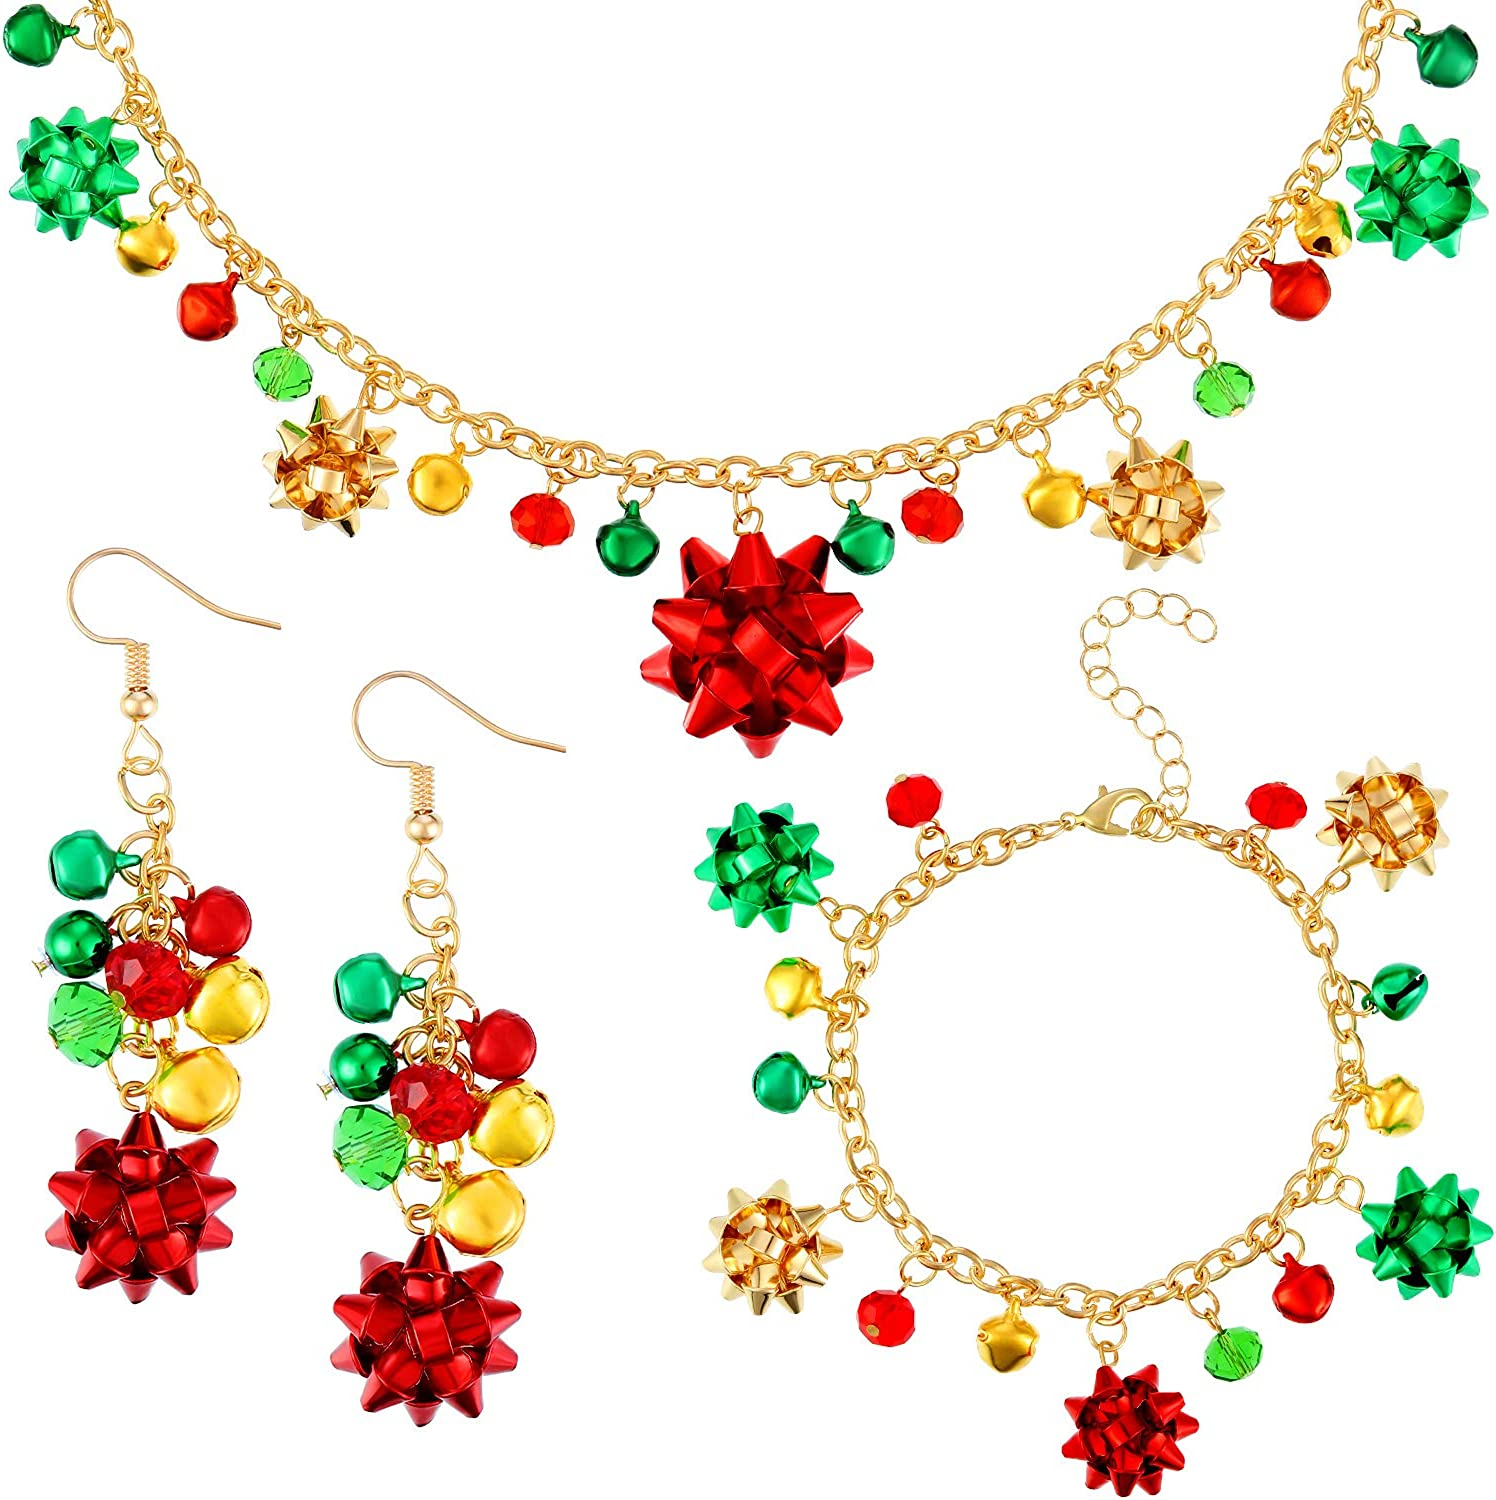 4 Pieces Christmas Bell Jewelry Set Christmas Bow Jewelry Set Includes Bow Pendant Necklace Bell Bracelet and Dangle Earrings for Christmas Party Favor